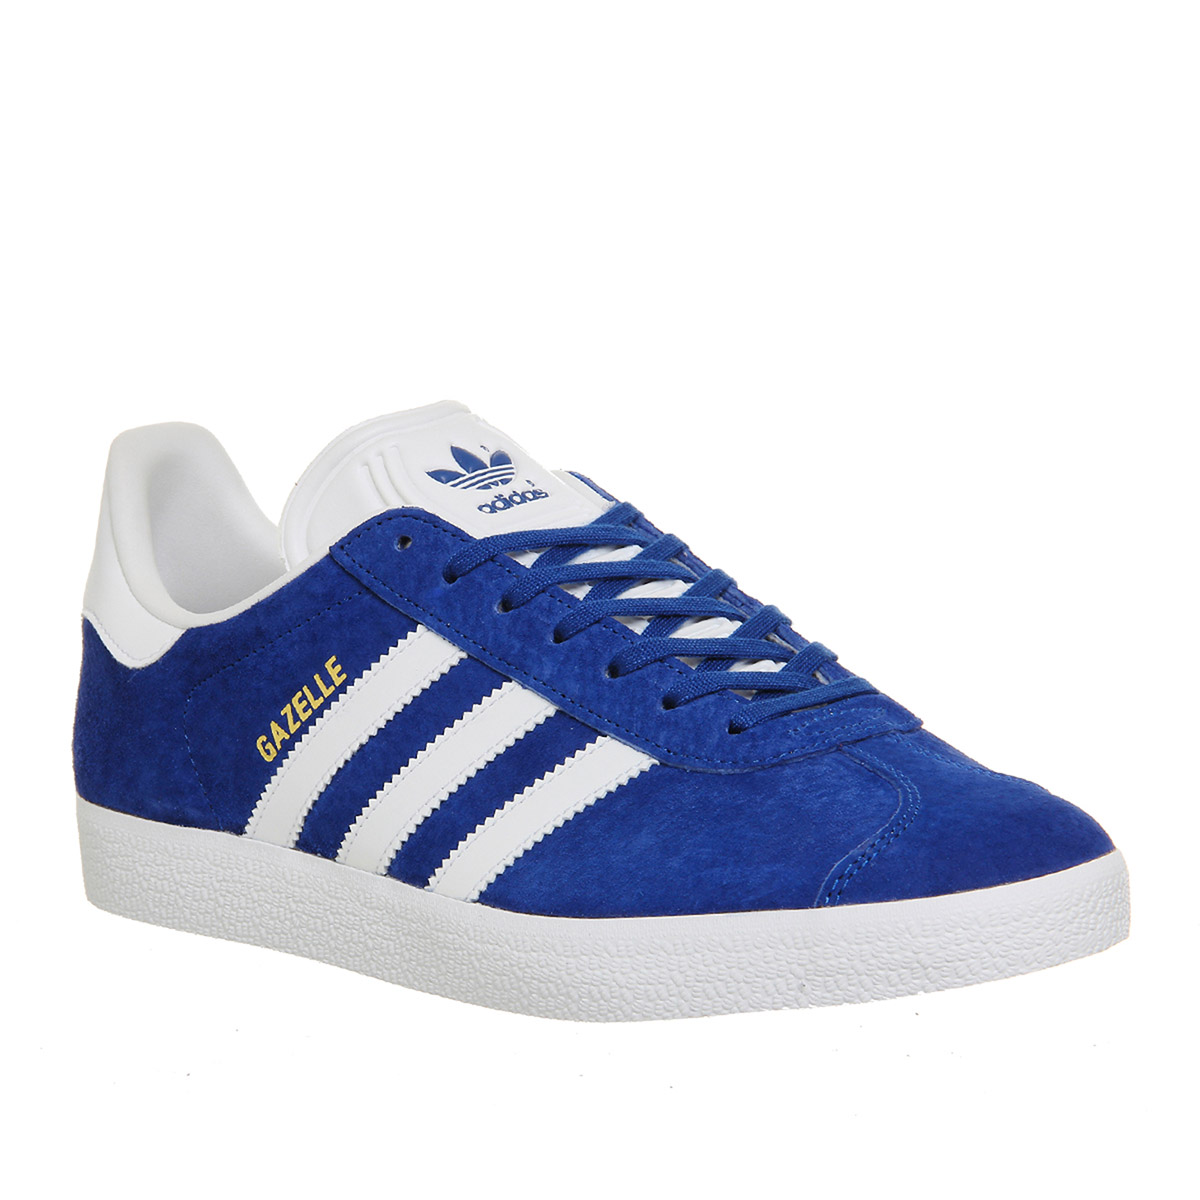 1e1ff16de Men s Original Adidas Gazelle Collegiate Royal - Cool Js Online